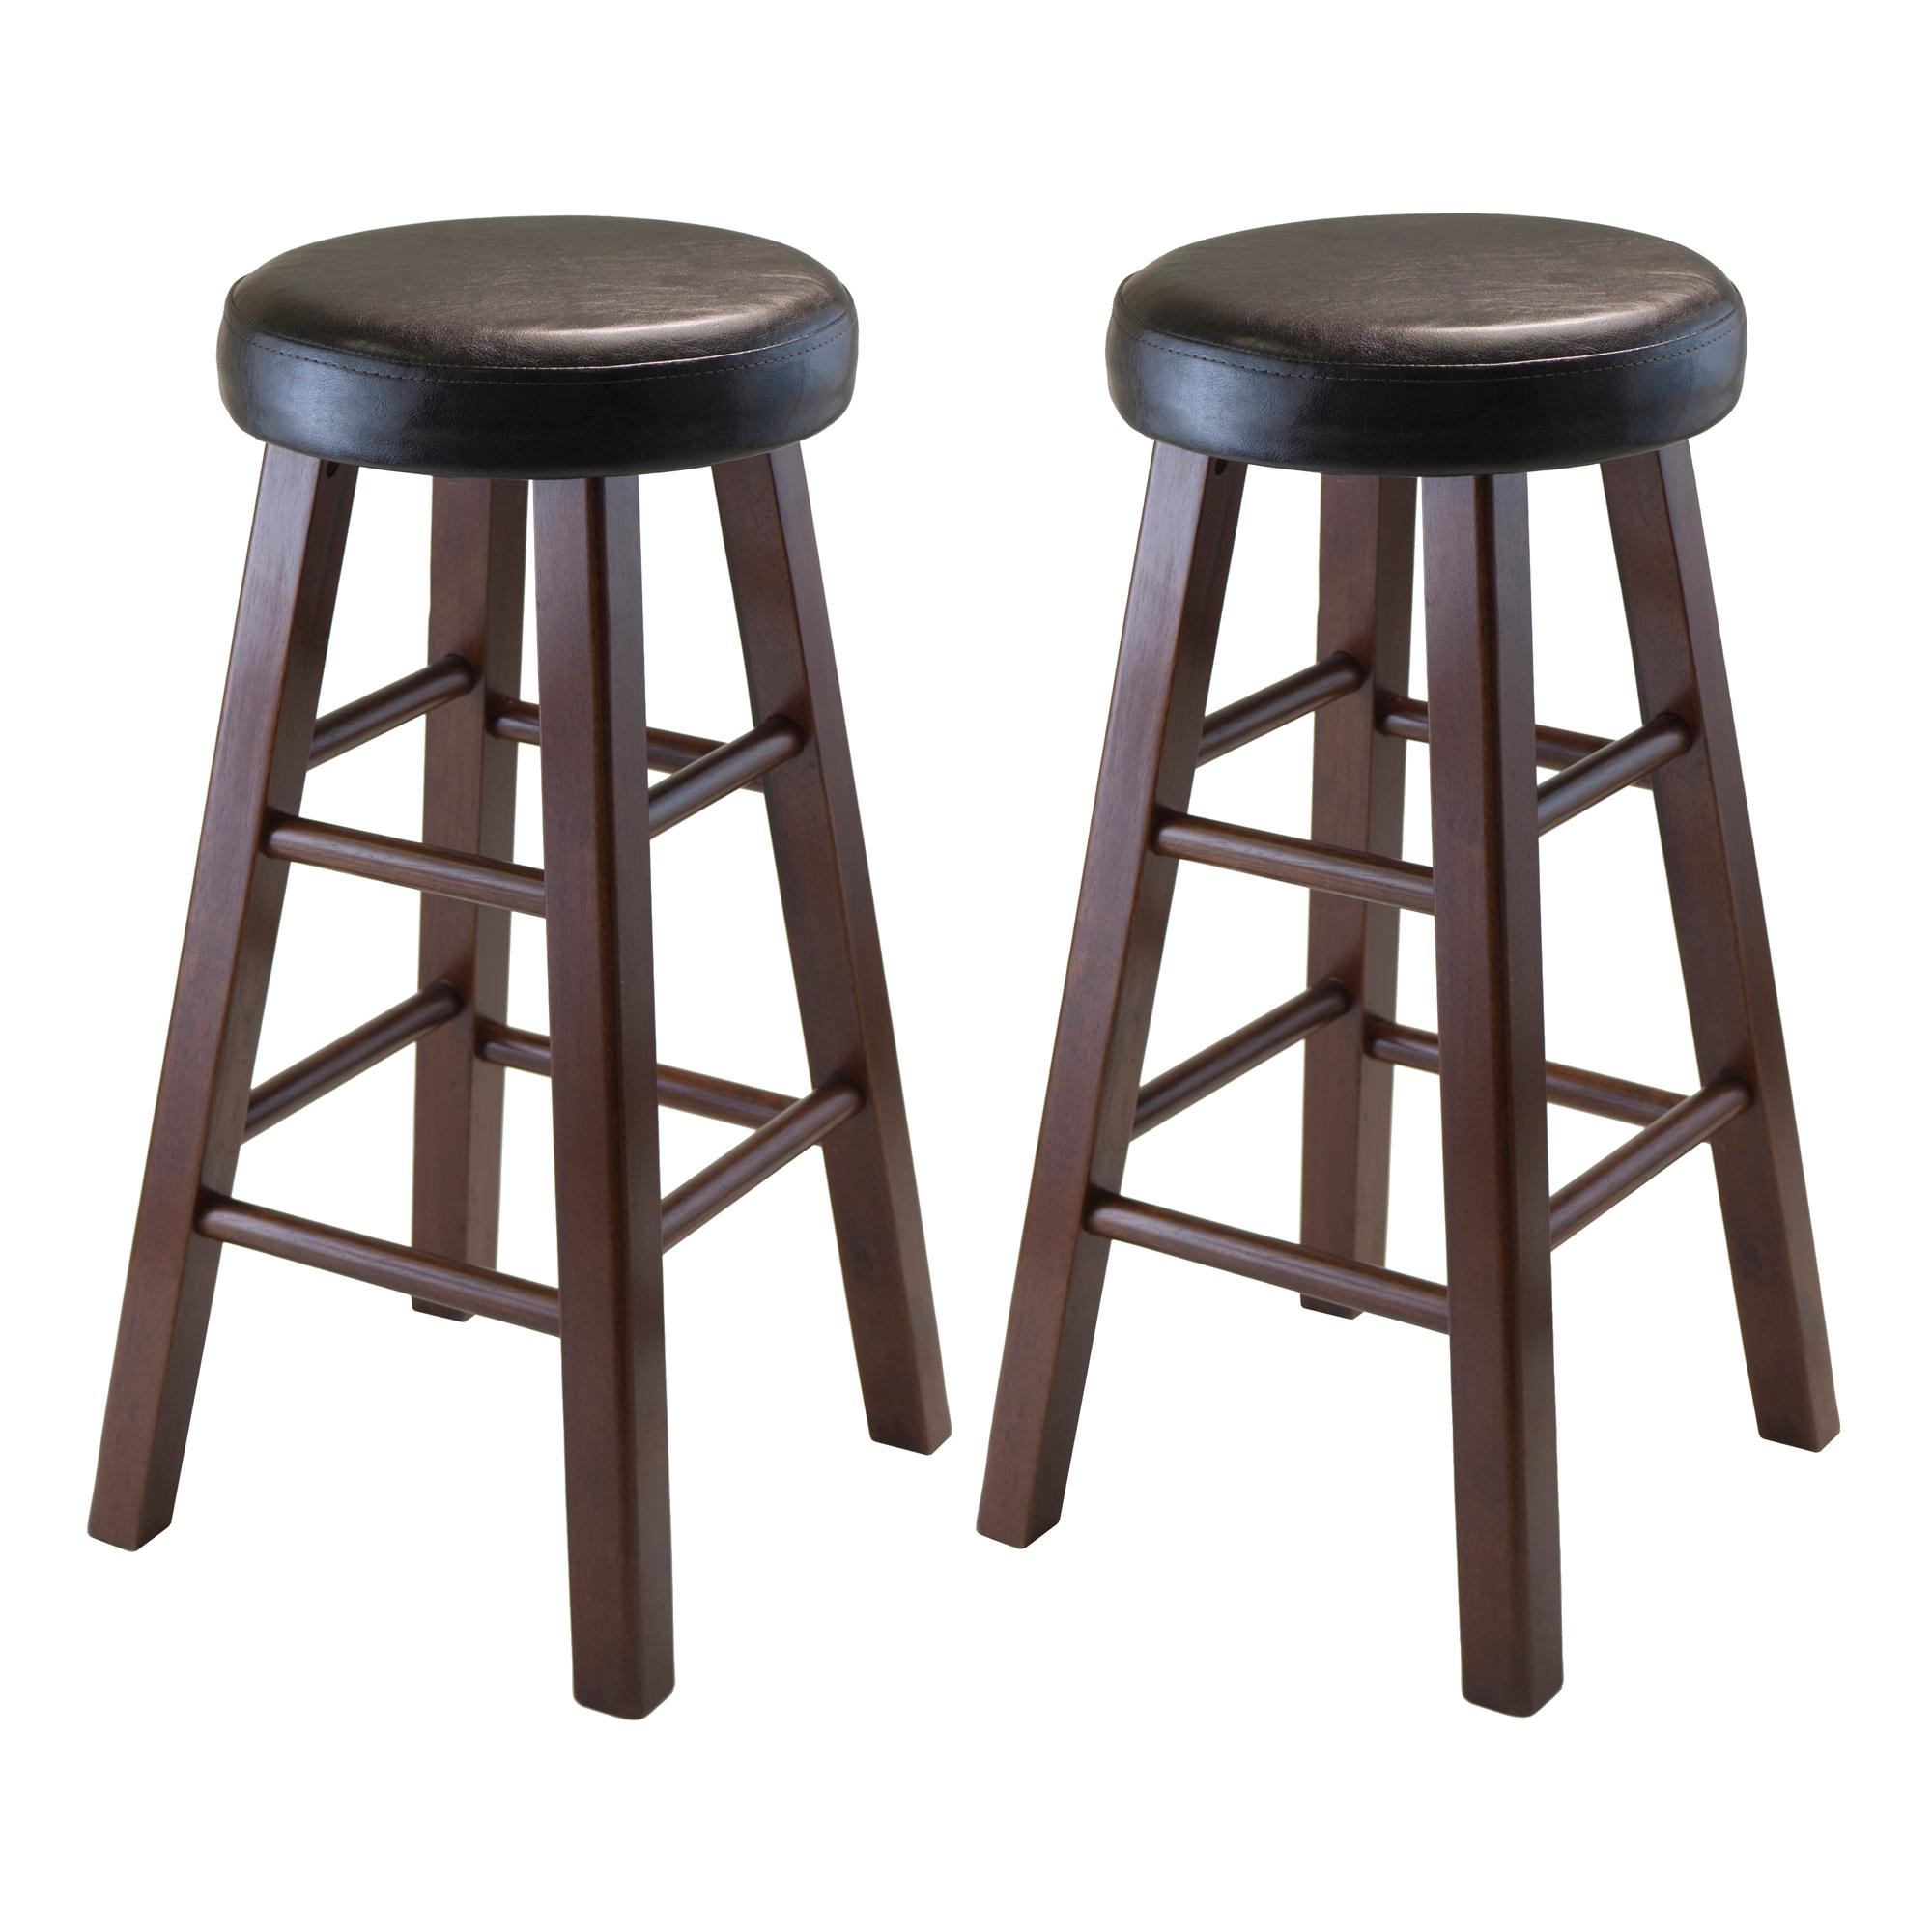 Elegant Bar Stool Leg Cap